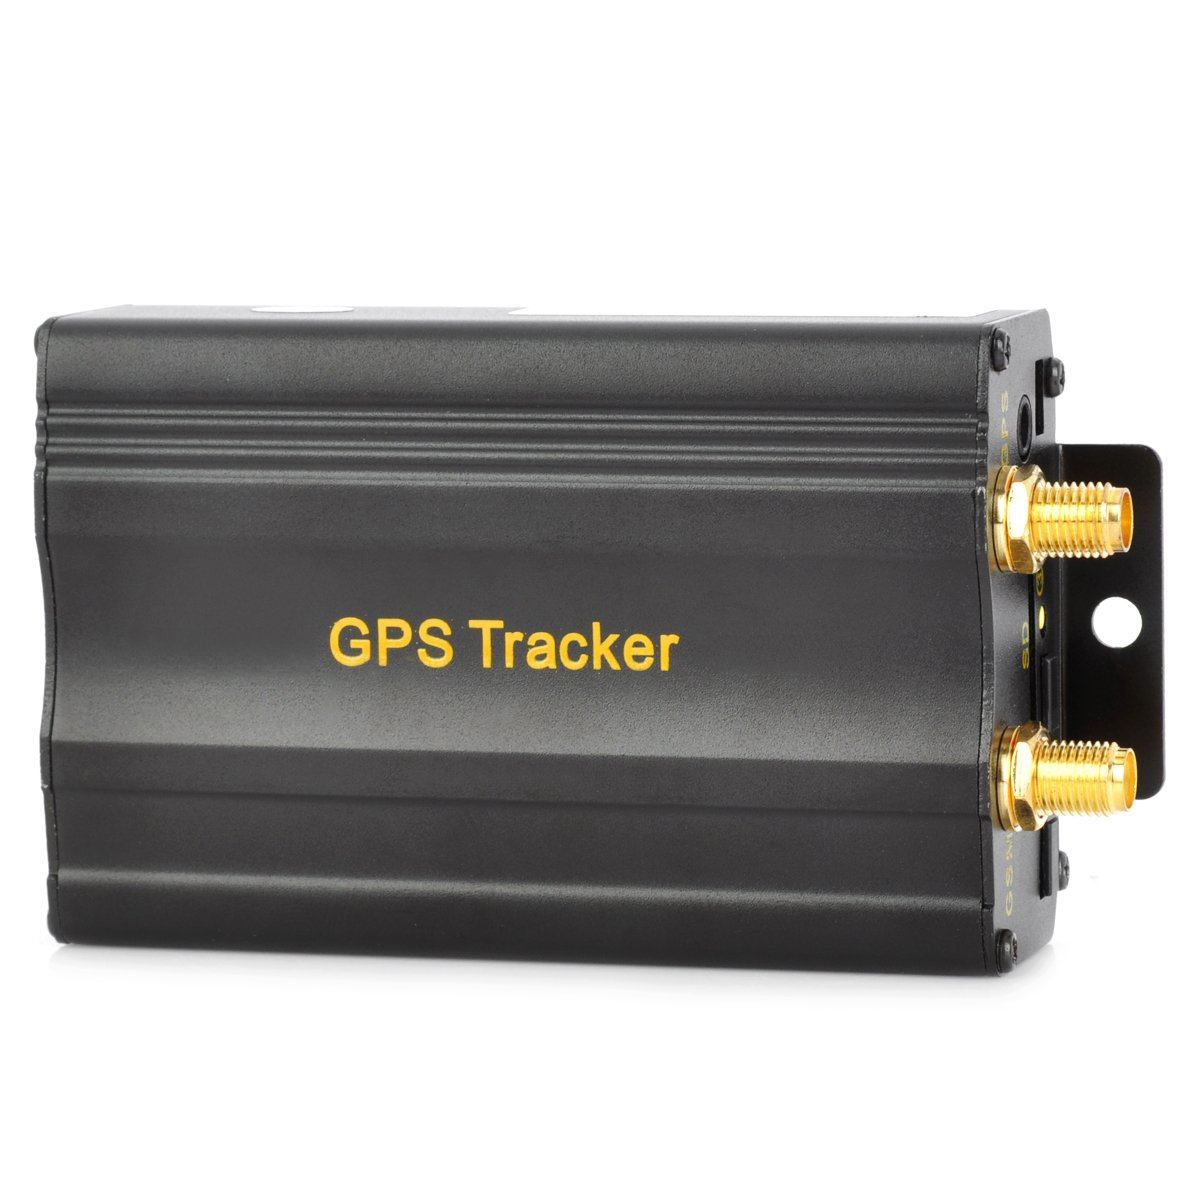 12V GSM GPRS GPS SMS Tracker Vehicle Car Tracking Device Anti-theft Computer Real-time Track